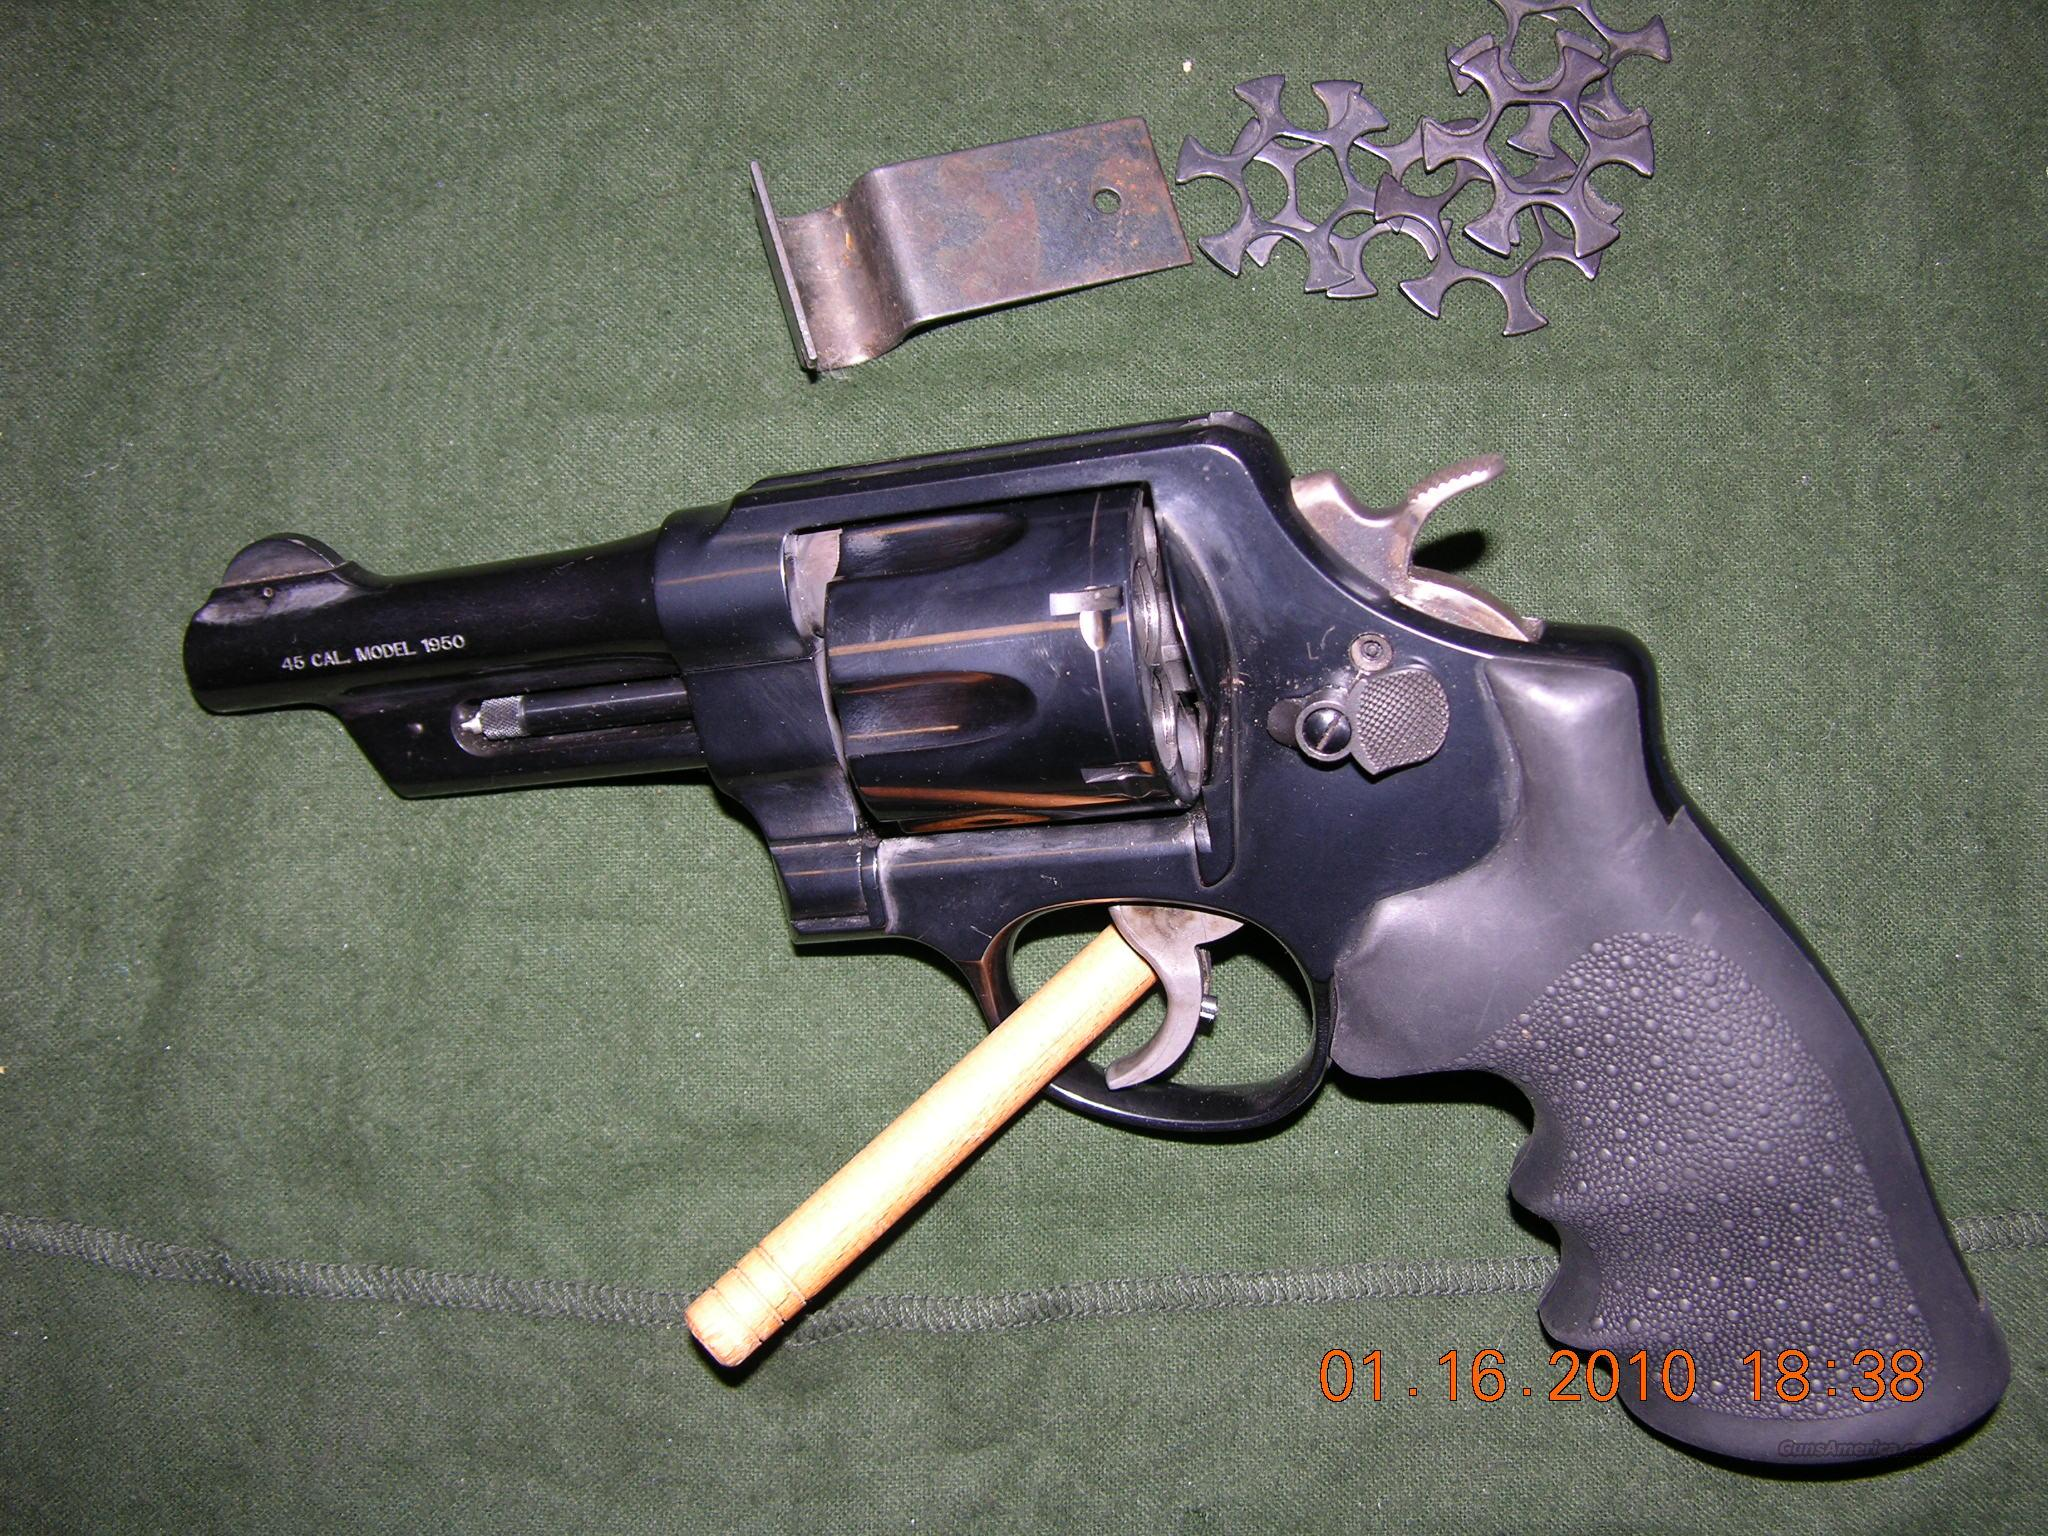 S&W Model 22-4  .45 cal Model 1950   .45 ACP  Guns > Pistols > Smith & Wesson Revolvers > Full Frame Revolver